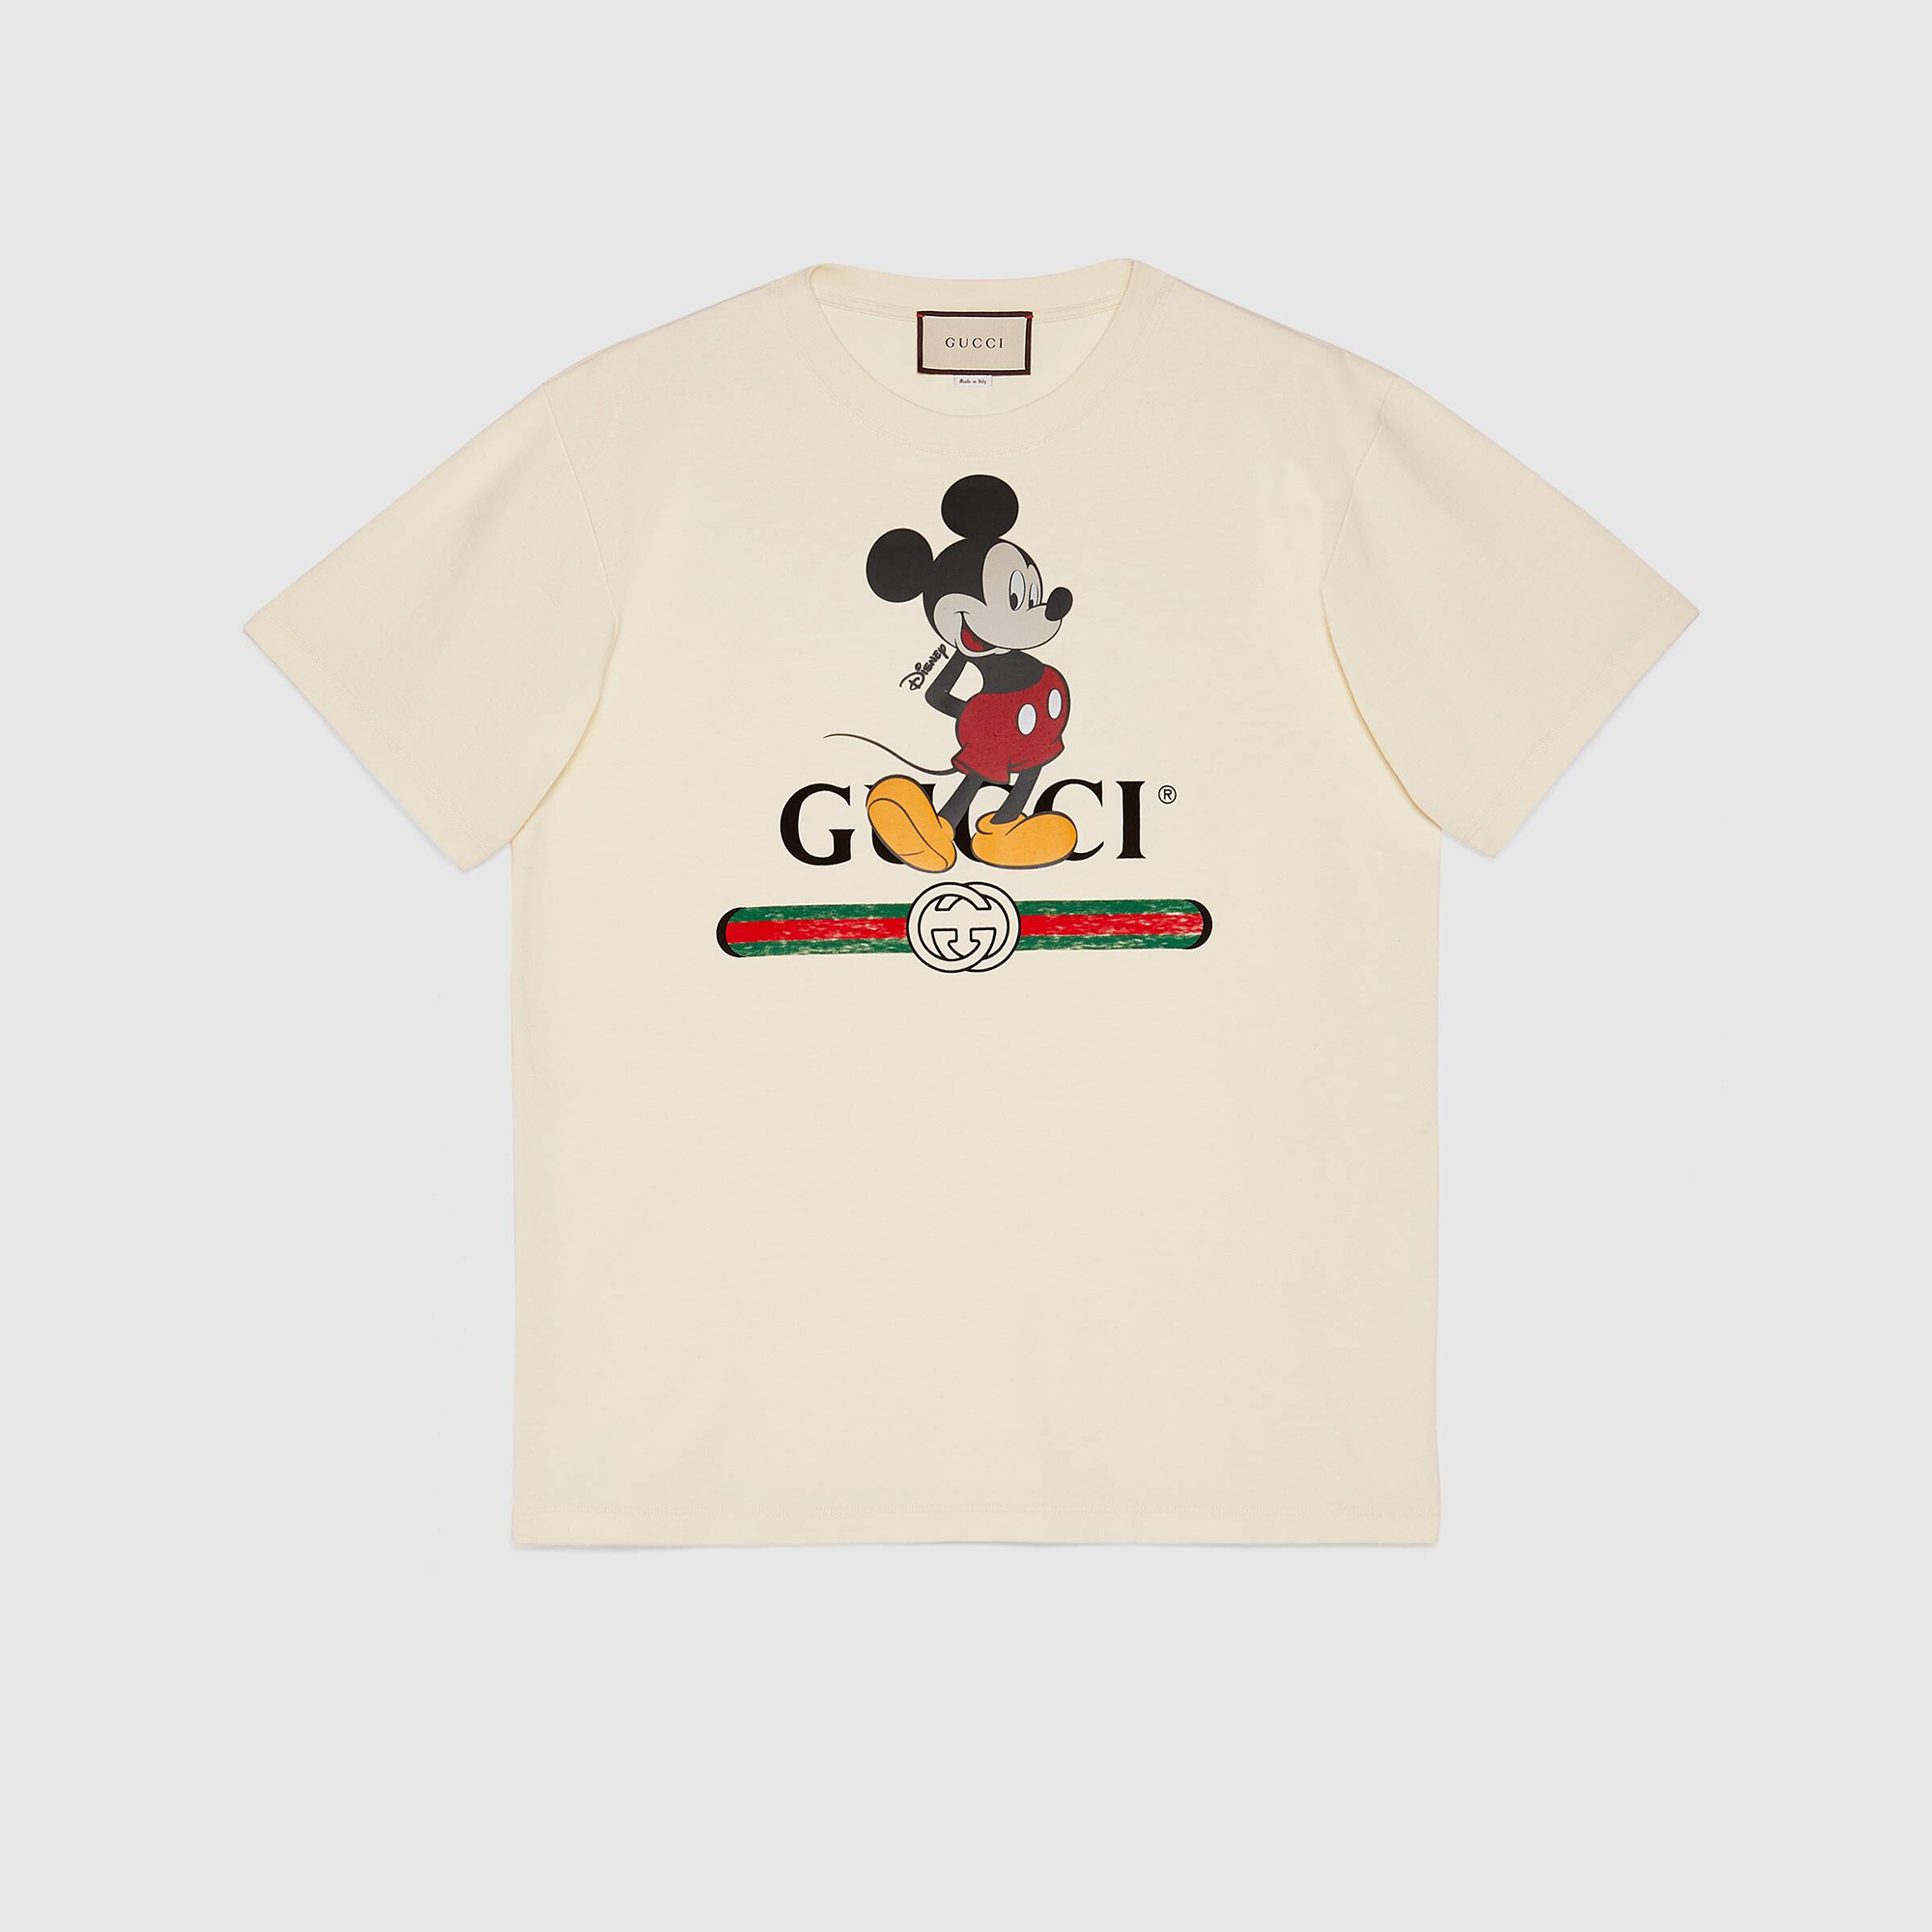 Gucci Unveils Mickey Mouse Collection for Lunar New Year Pics